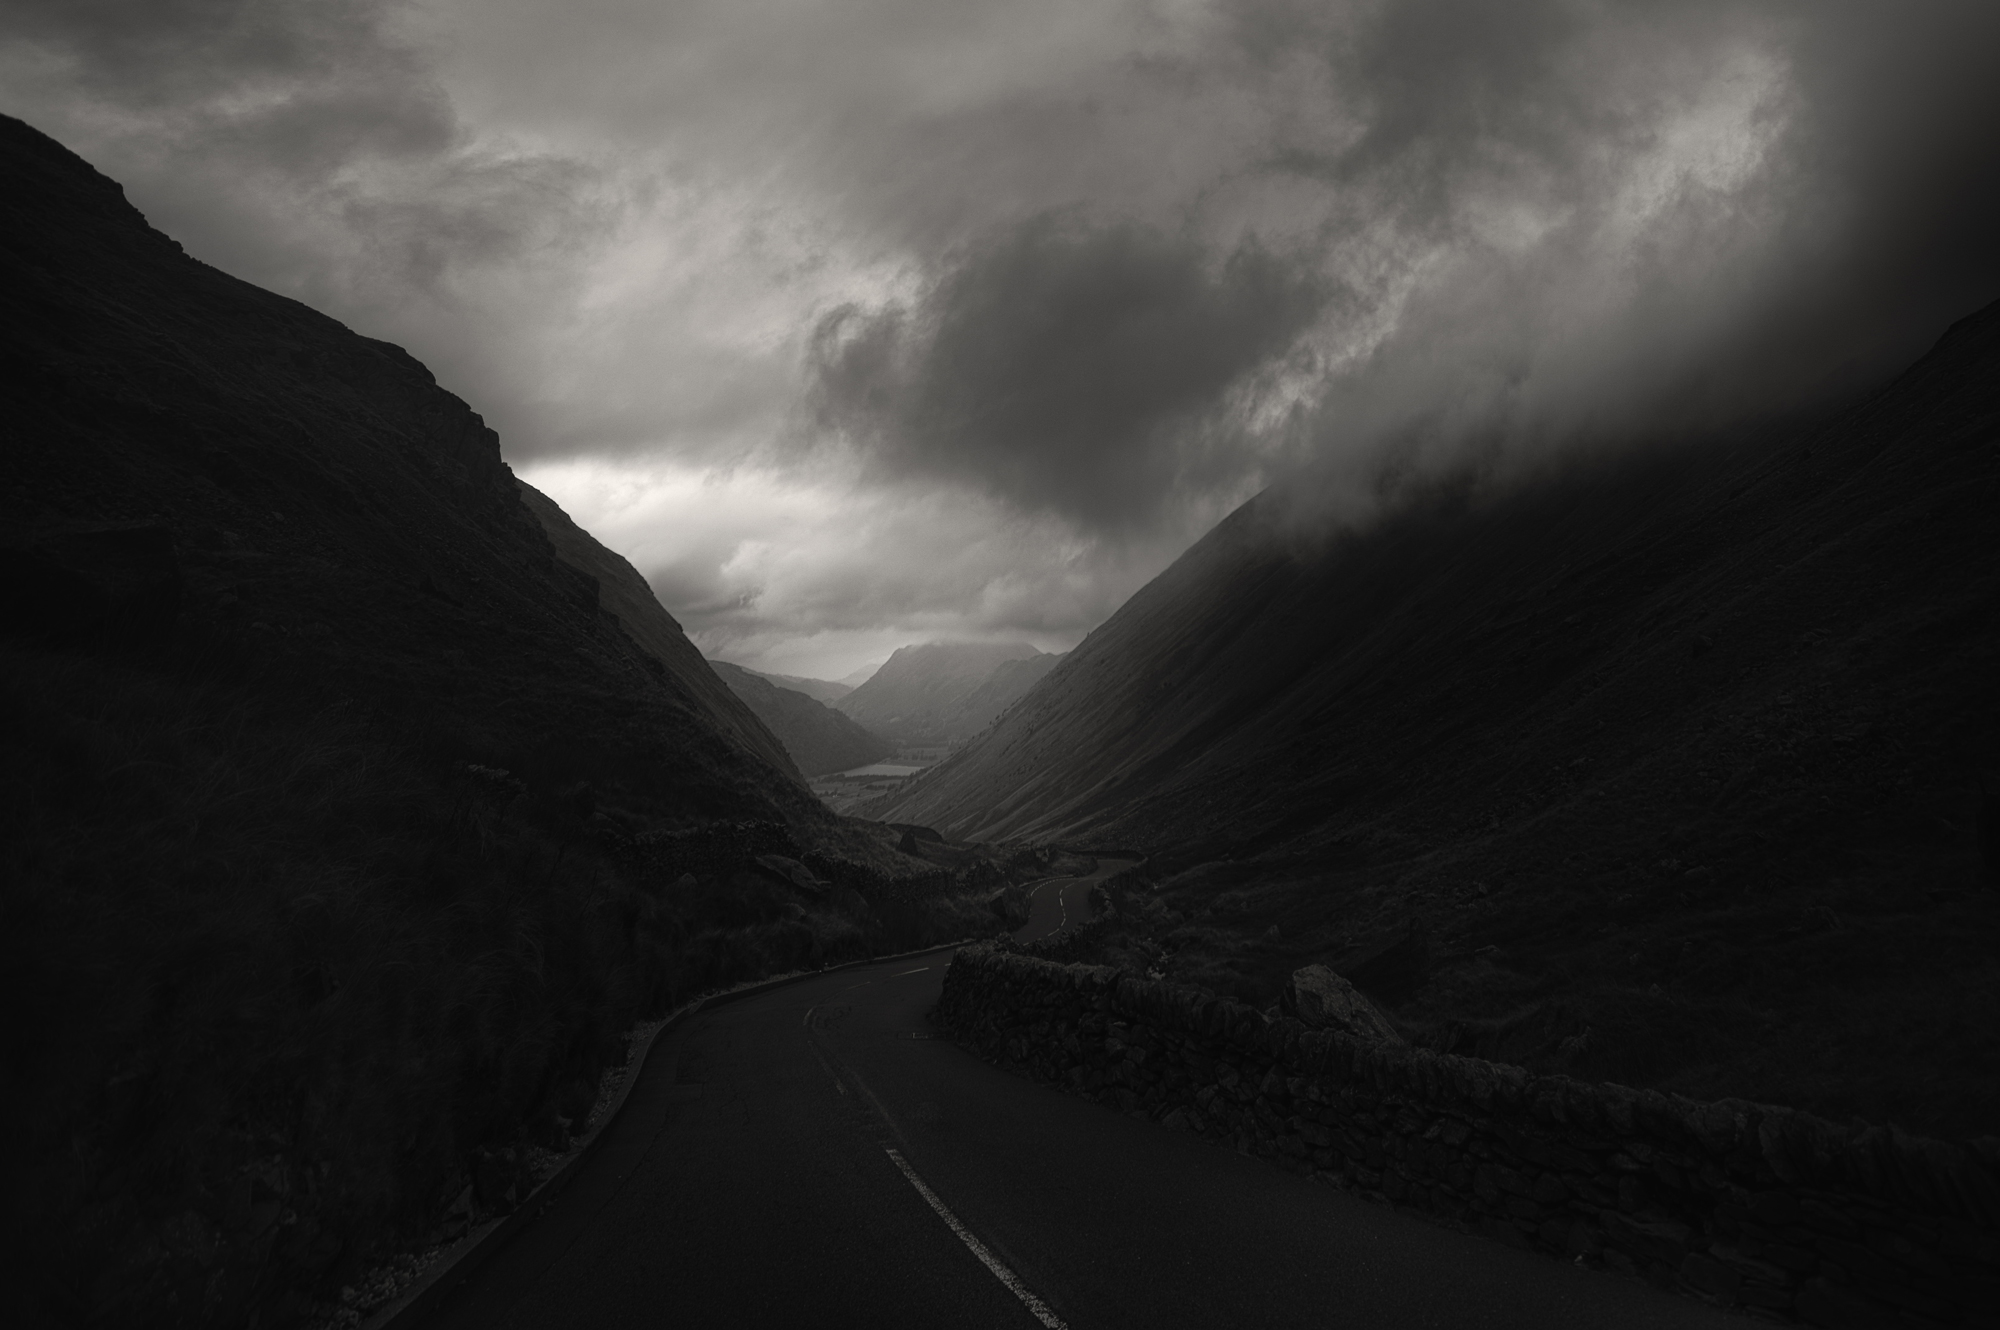 Roads_LakeDistrict_AndyLee©2015.JPG